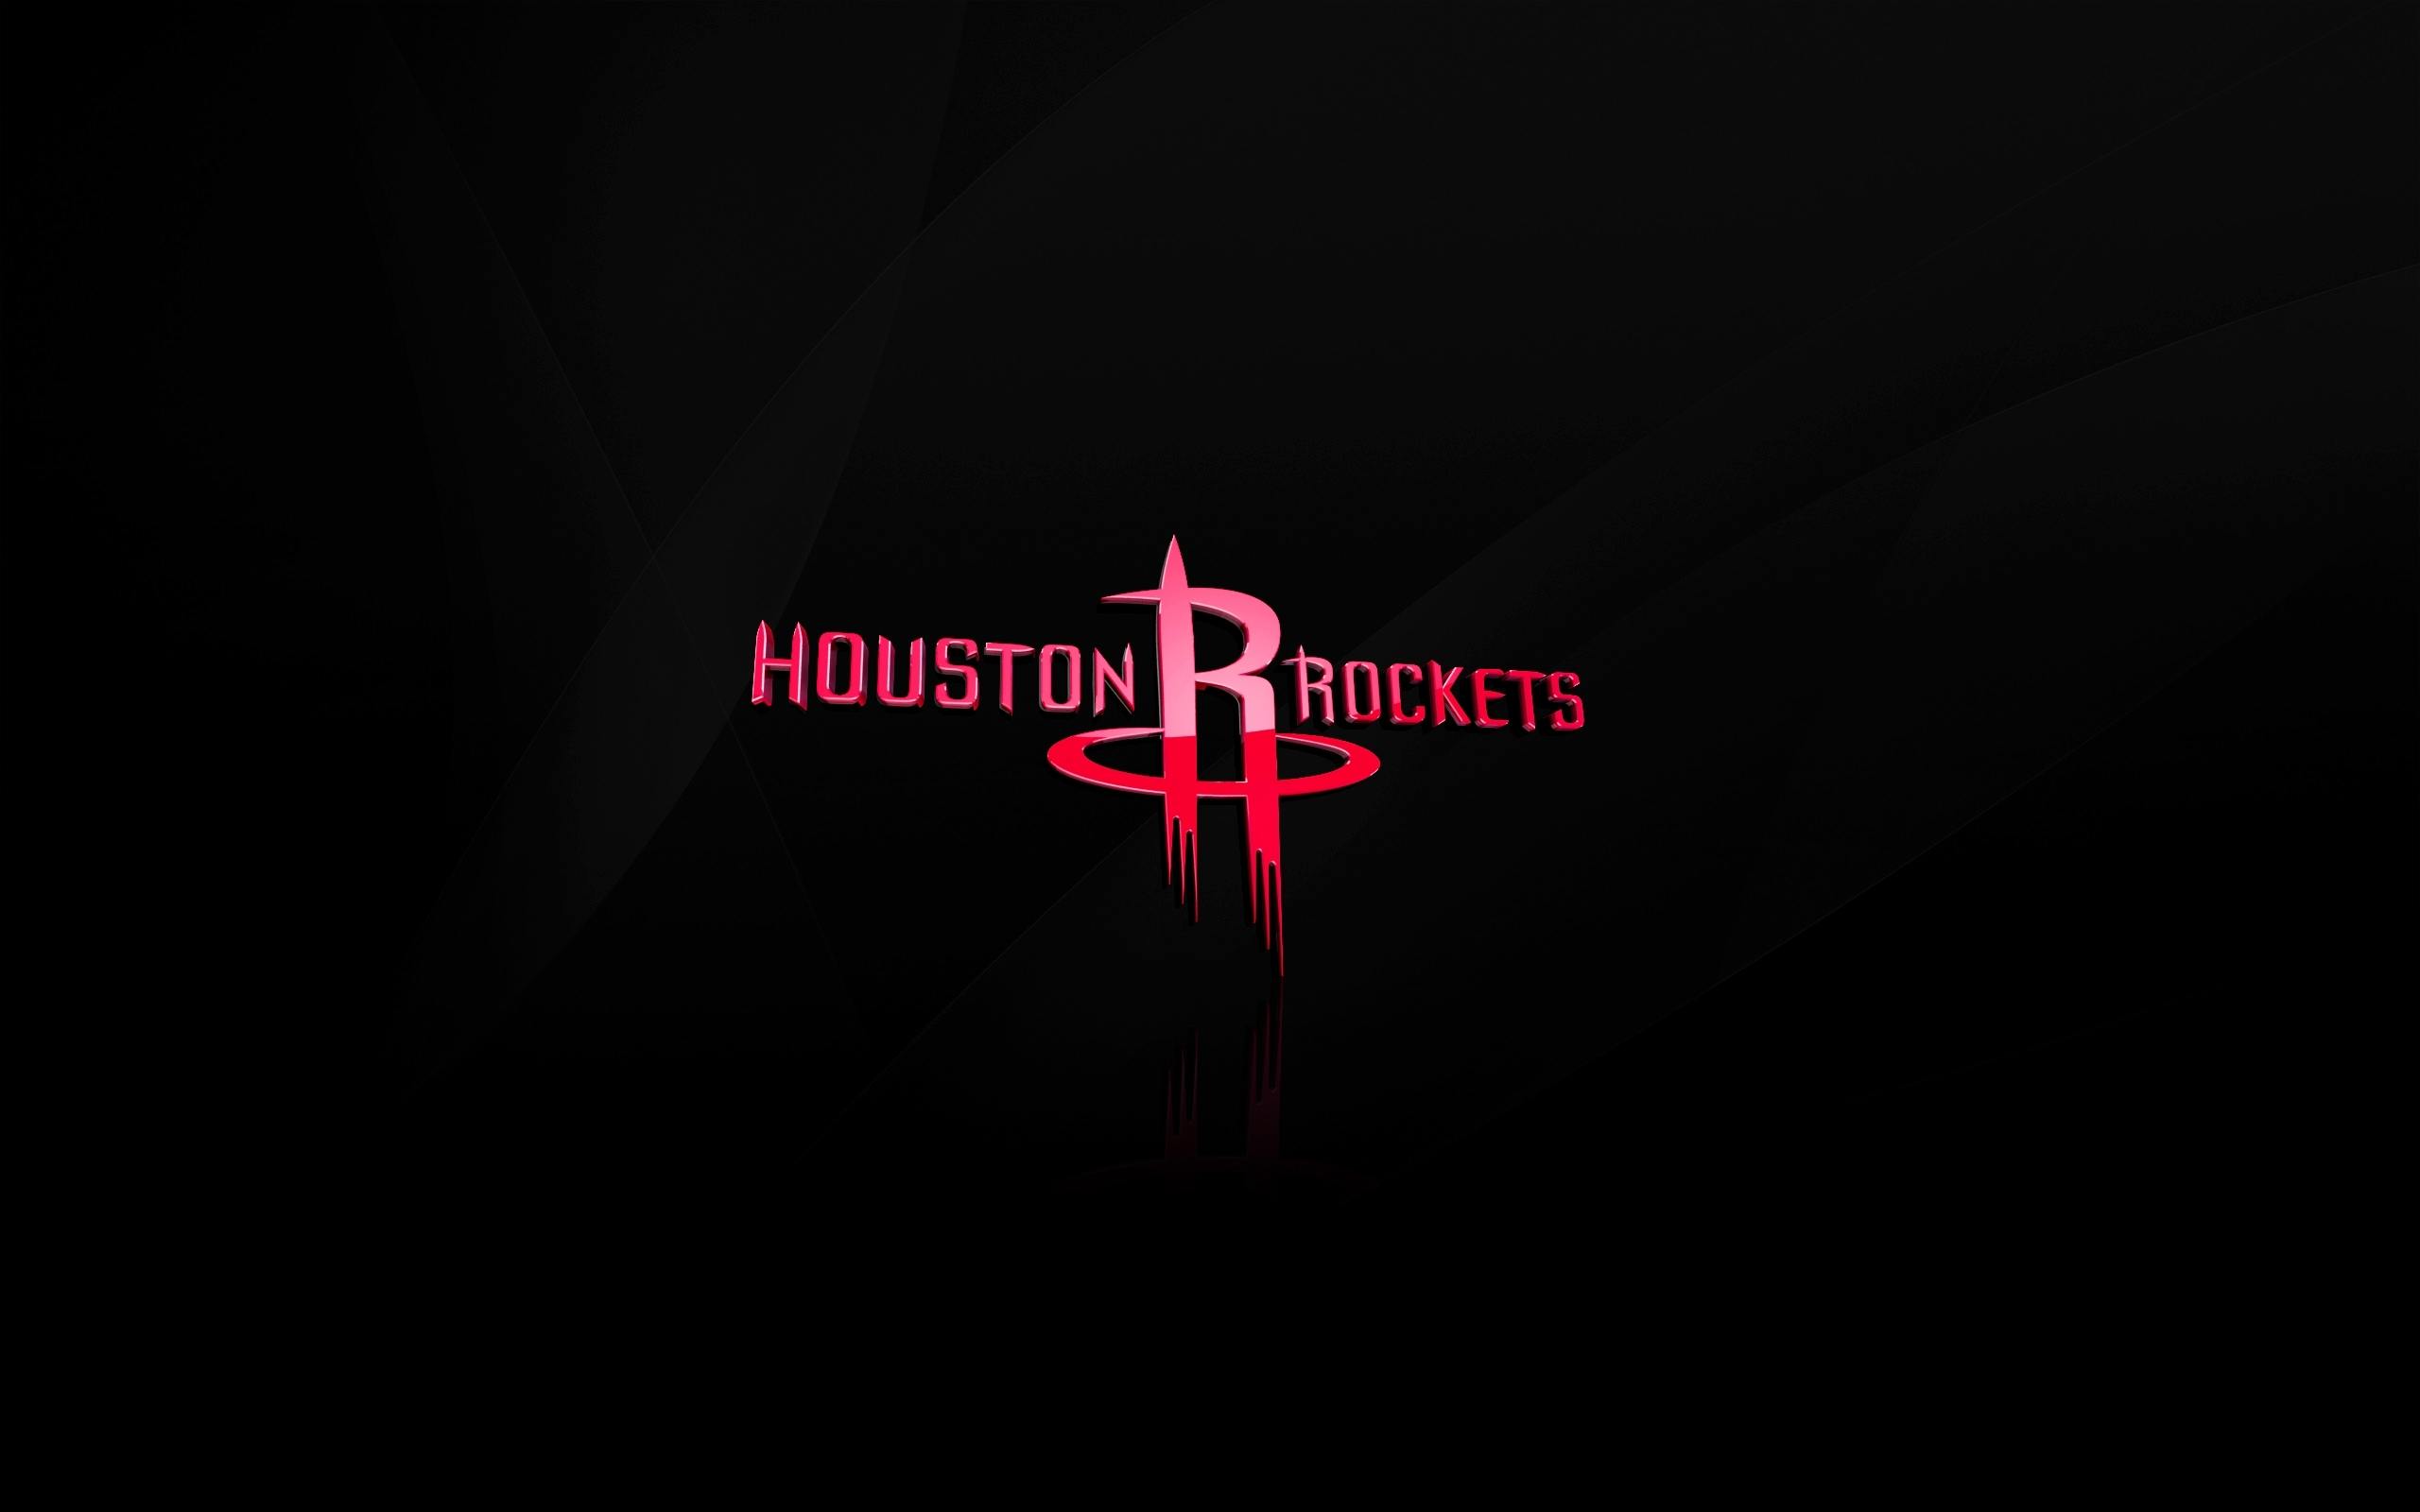 Wallpaper Volcom 3d Houston Rockets Are Said To Sell For Nba Record 2 2 Billion